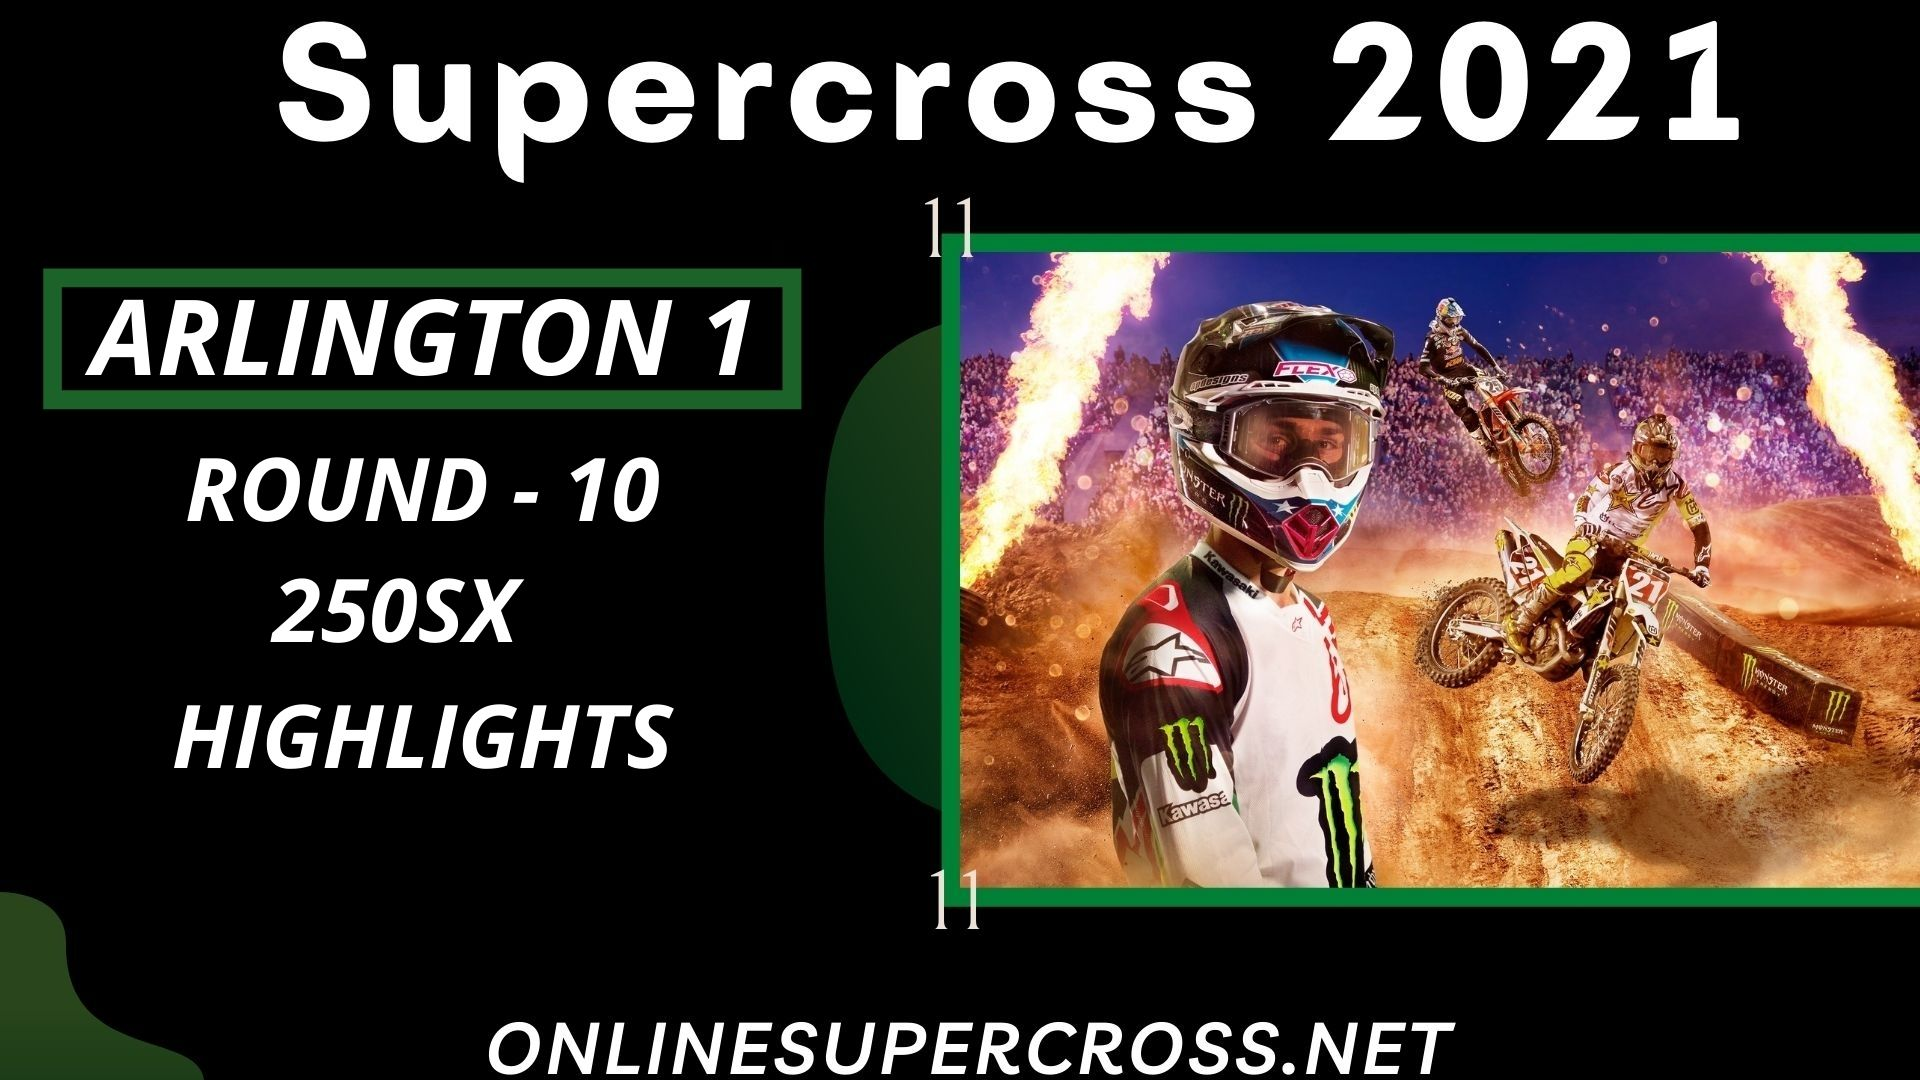 Arlington 1 Round 10 Supercross 250SX Highlights 2021